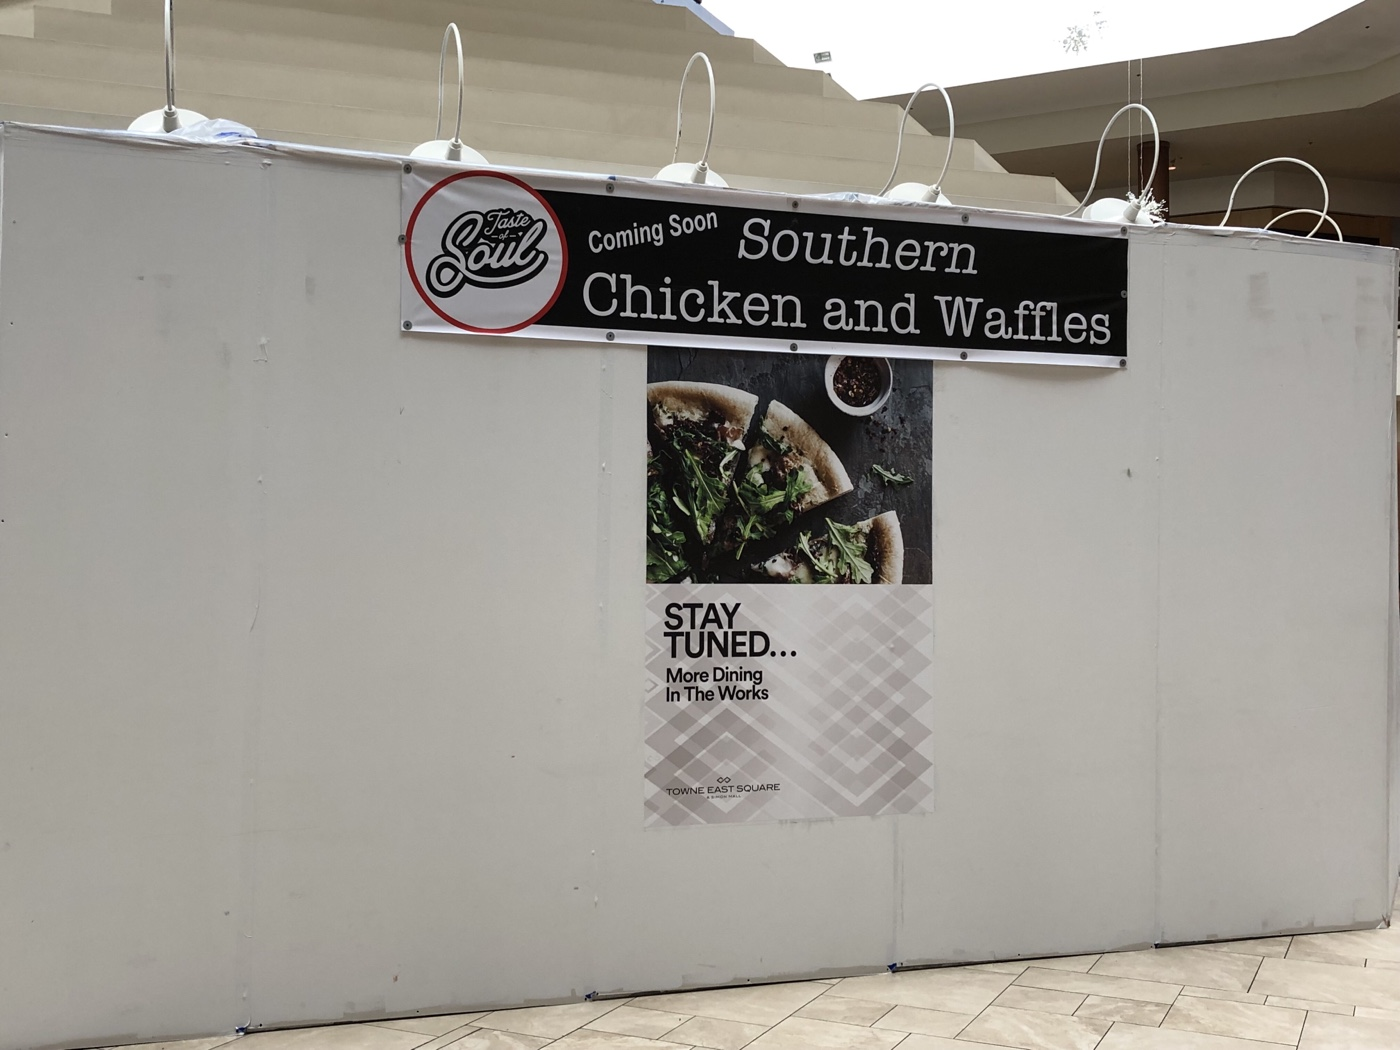 Taste of Soul Southern Chicken and Waffles